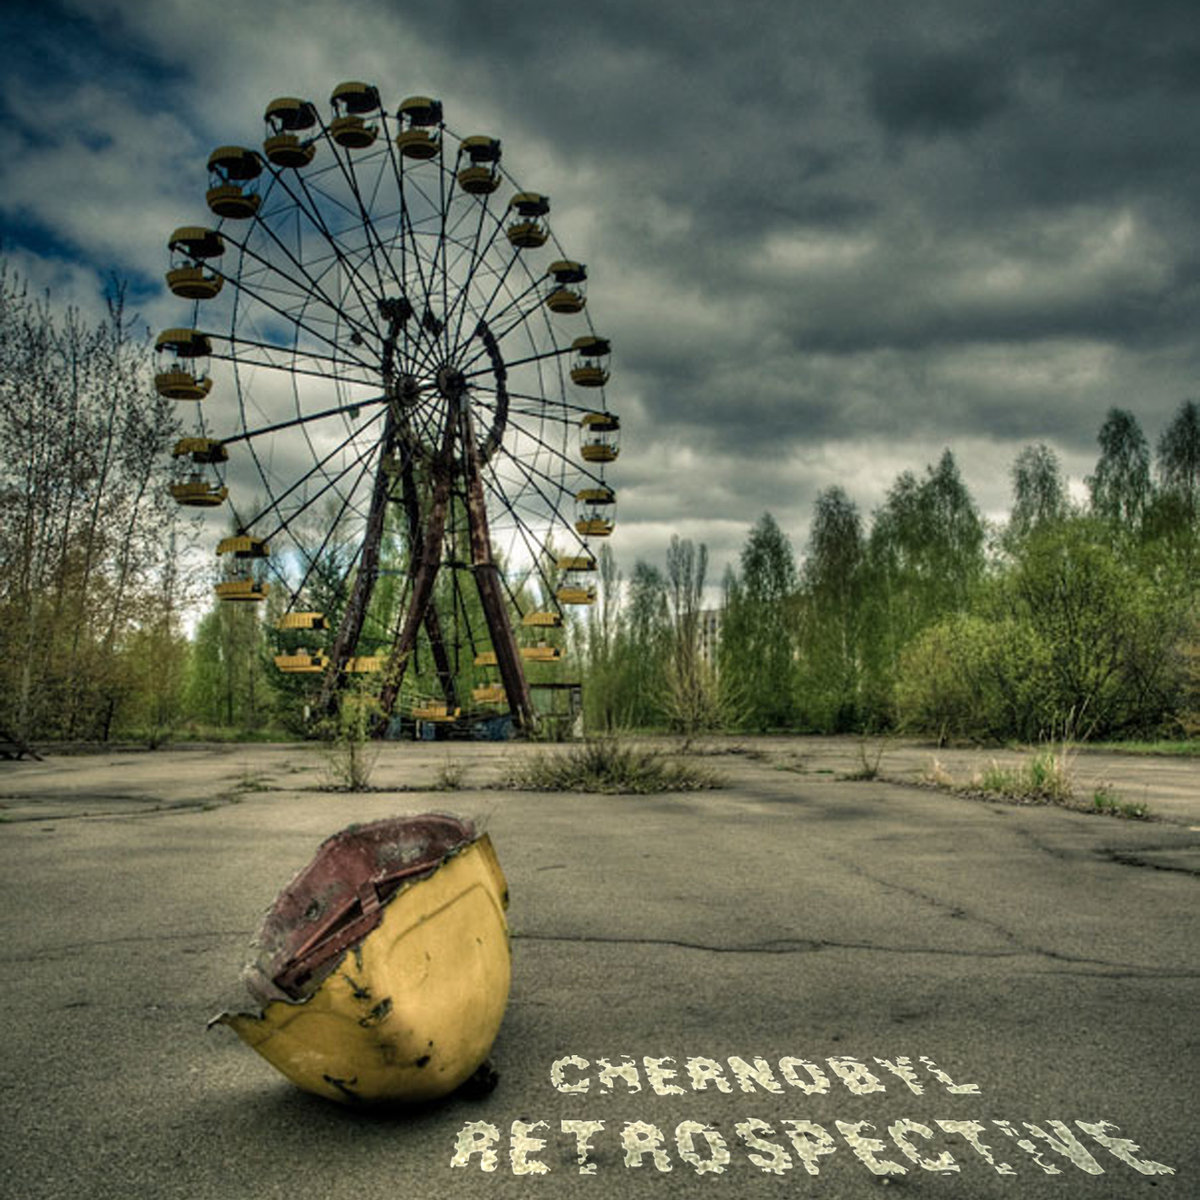 Helga's Ephemeris - When The Full Moon Shines @ 'Various Artists - Chernobyl Retrospective' album (electronic, ambient)